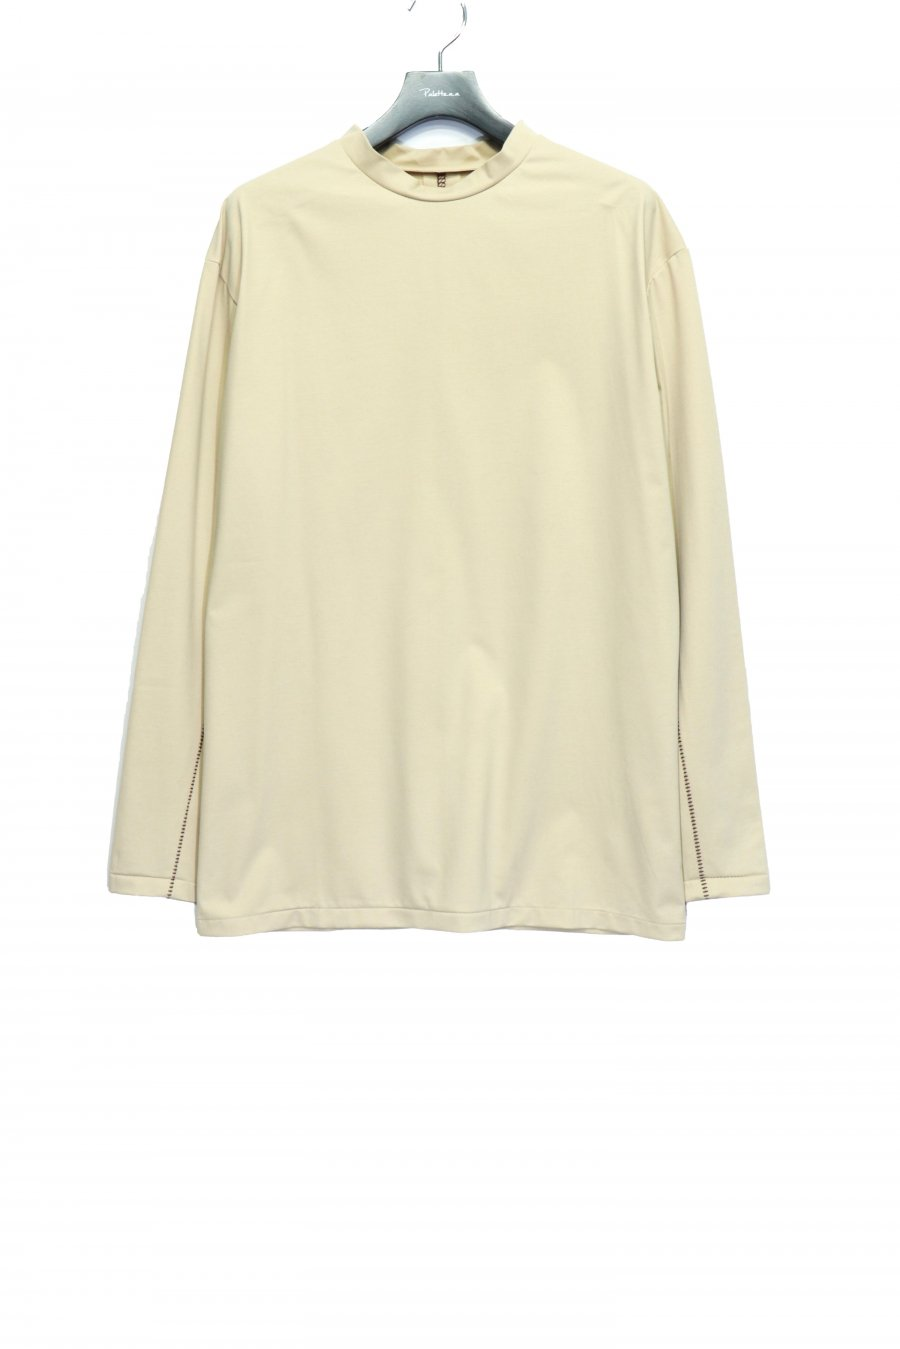 [ー]Minus  LONG SLEEVE (BEIGE)<img class='new_mark_img2' src='https://img.shop-pro.jp/img/new/icons15.gif' style='border:none;display:inline;margin:0px;padding:0px;width:auto;' />